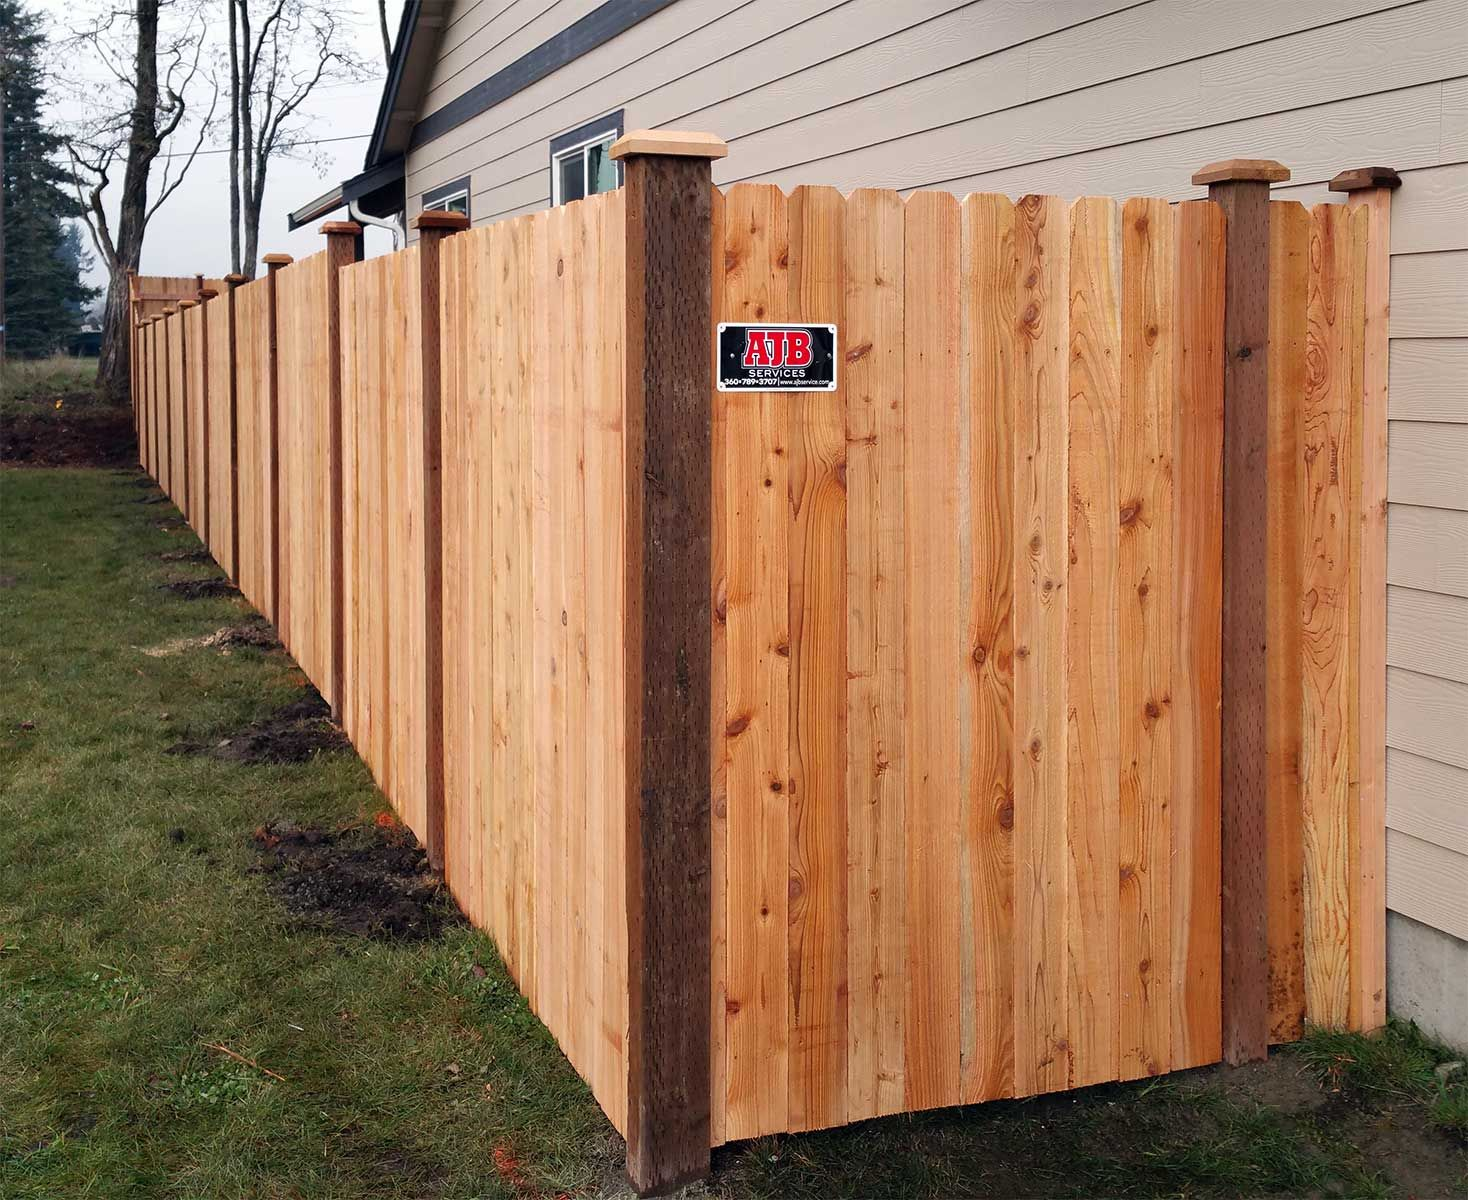 Dog Ear Fences Like This One In Rochester Provide Cost Effective Privacy And Security